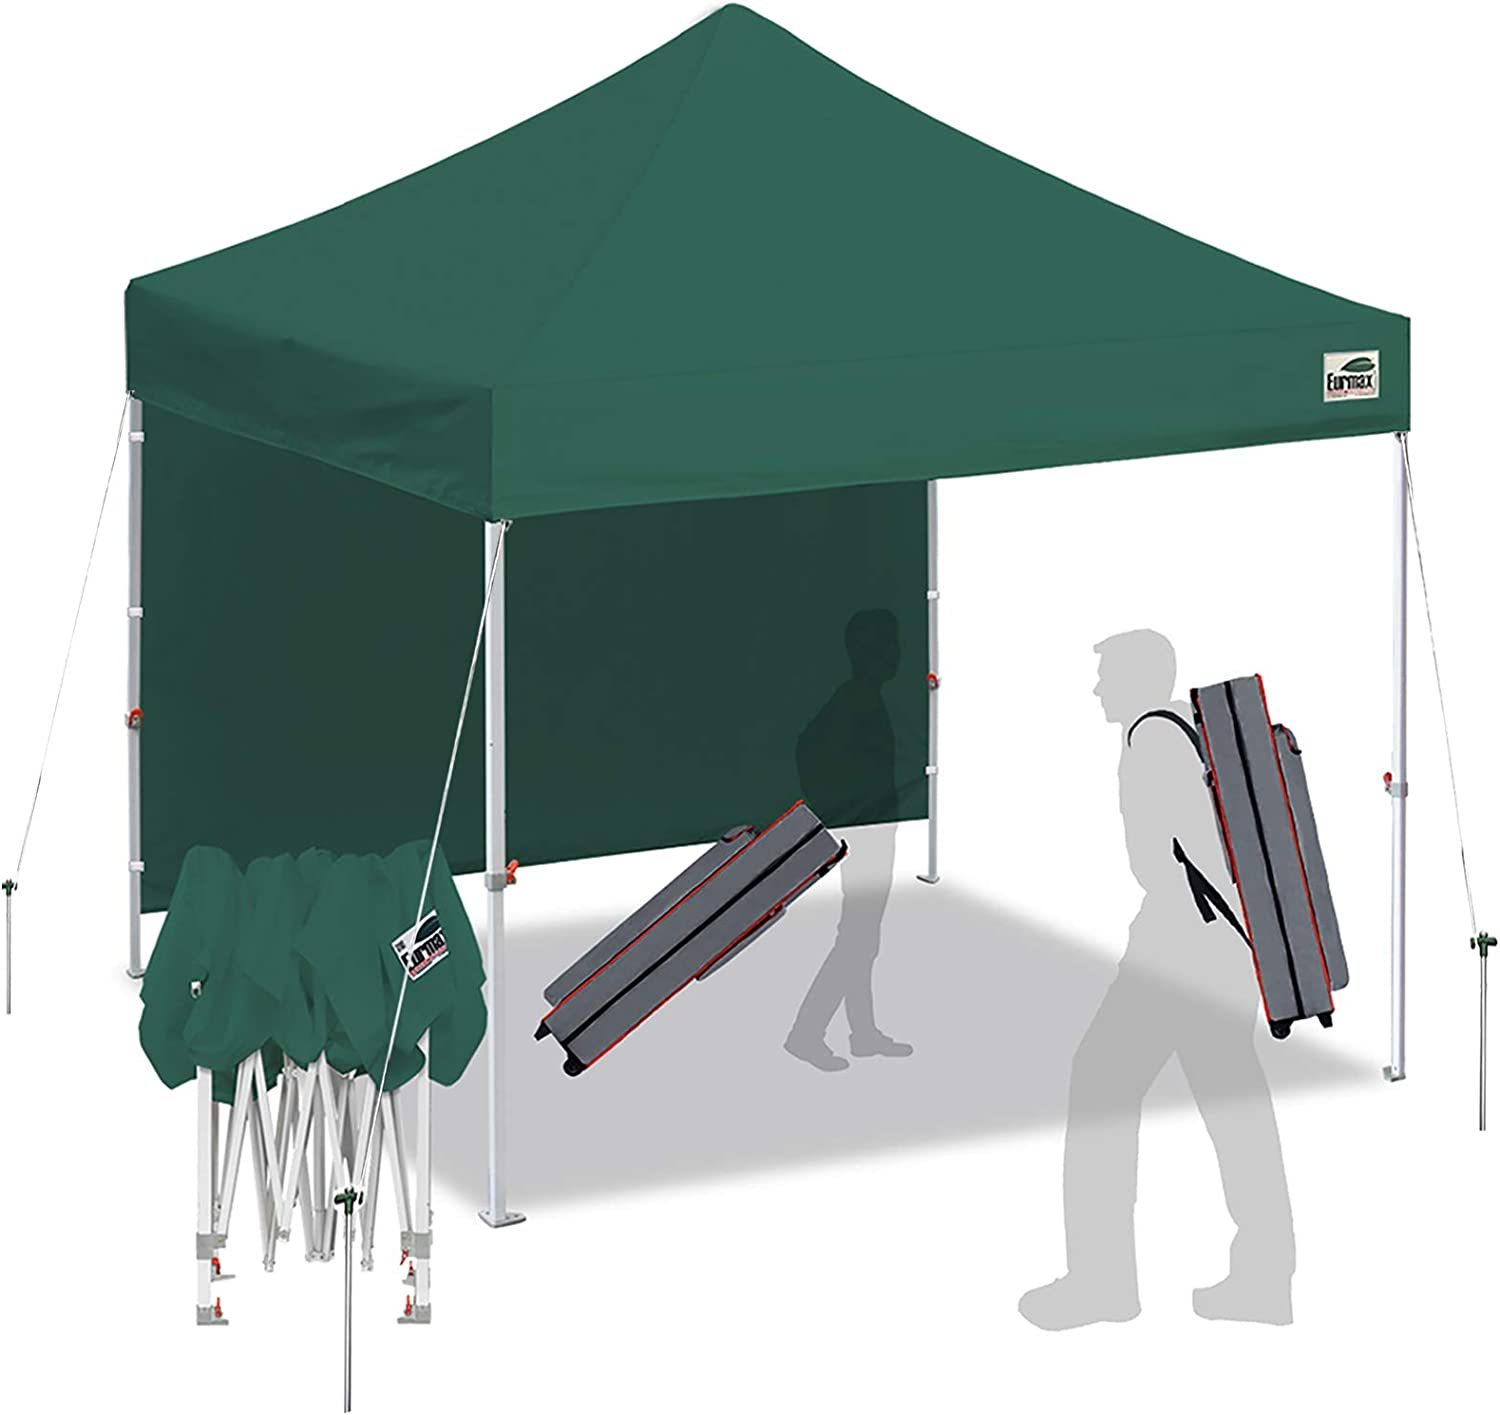 Eurmax Smart 10'x10' Pop up Canopy Tent Outdoor Festival Tailgate Event Vendor Craft Show Canopy Instant Shelter with 1 Removable Sunwall and Backpack Roller Bag Bonus 4X Stakes